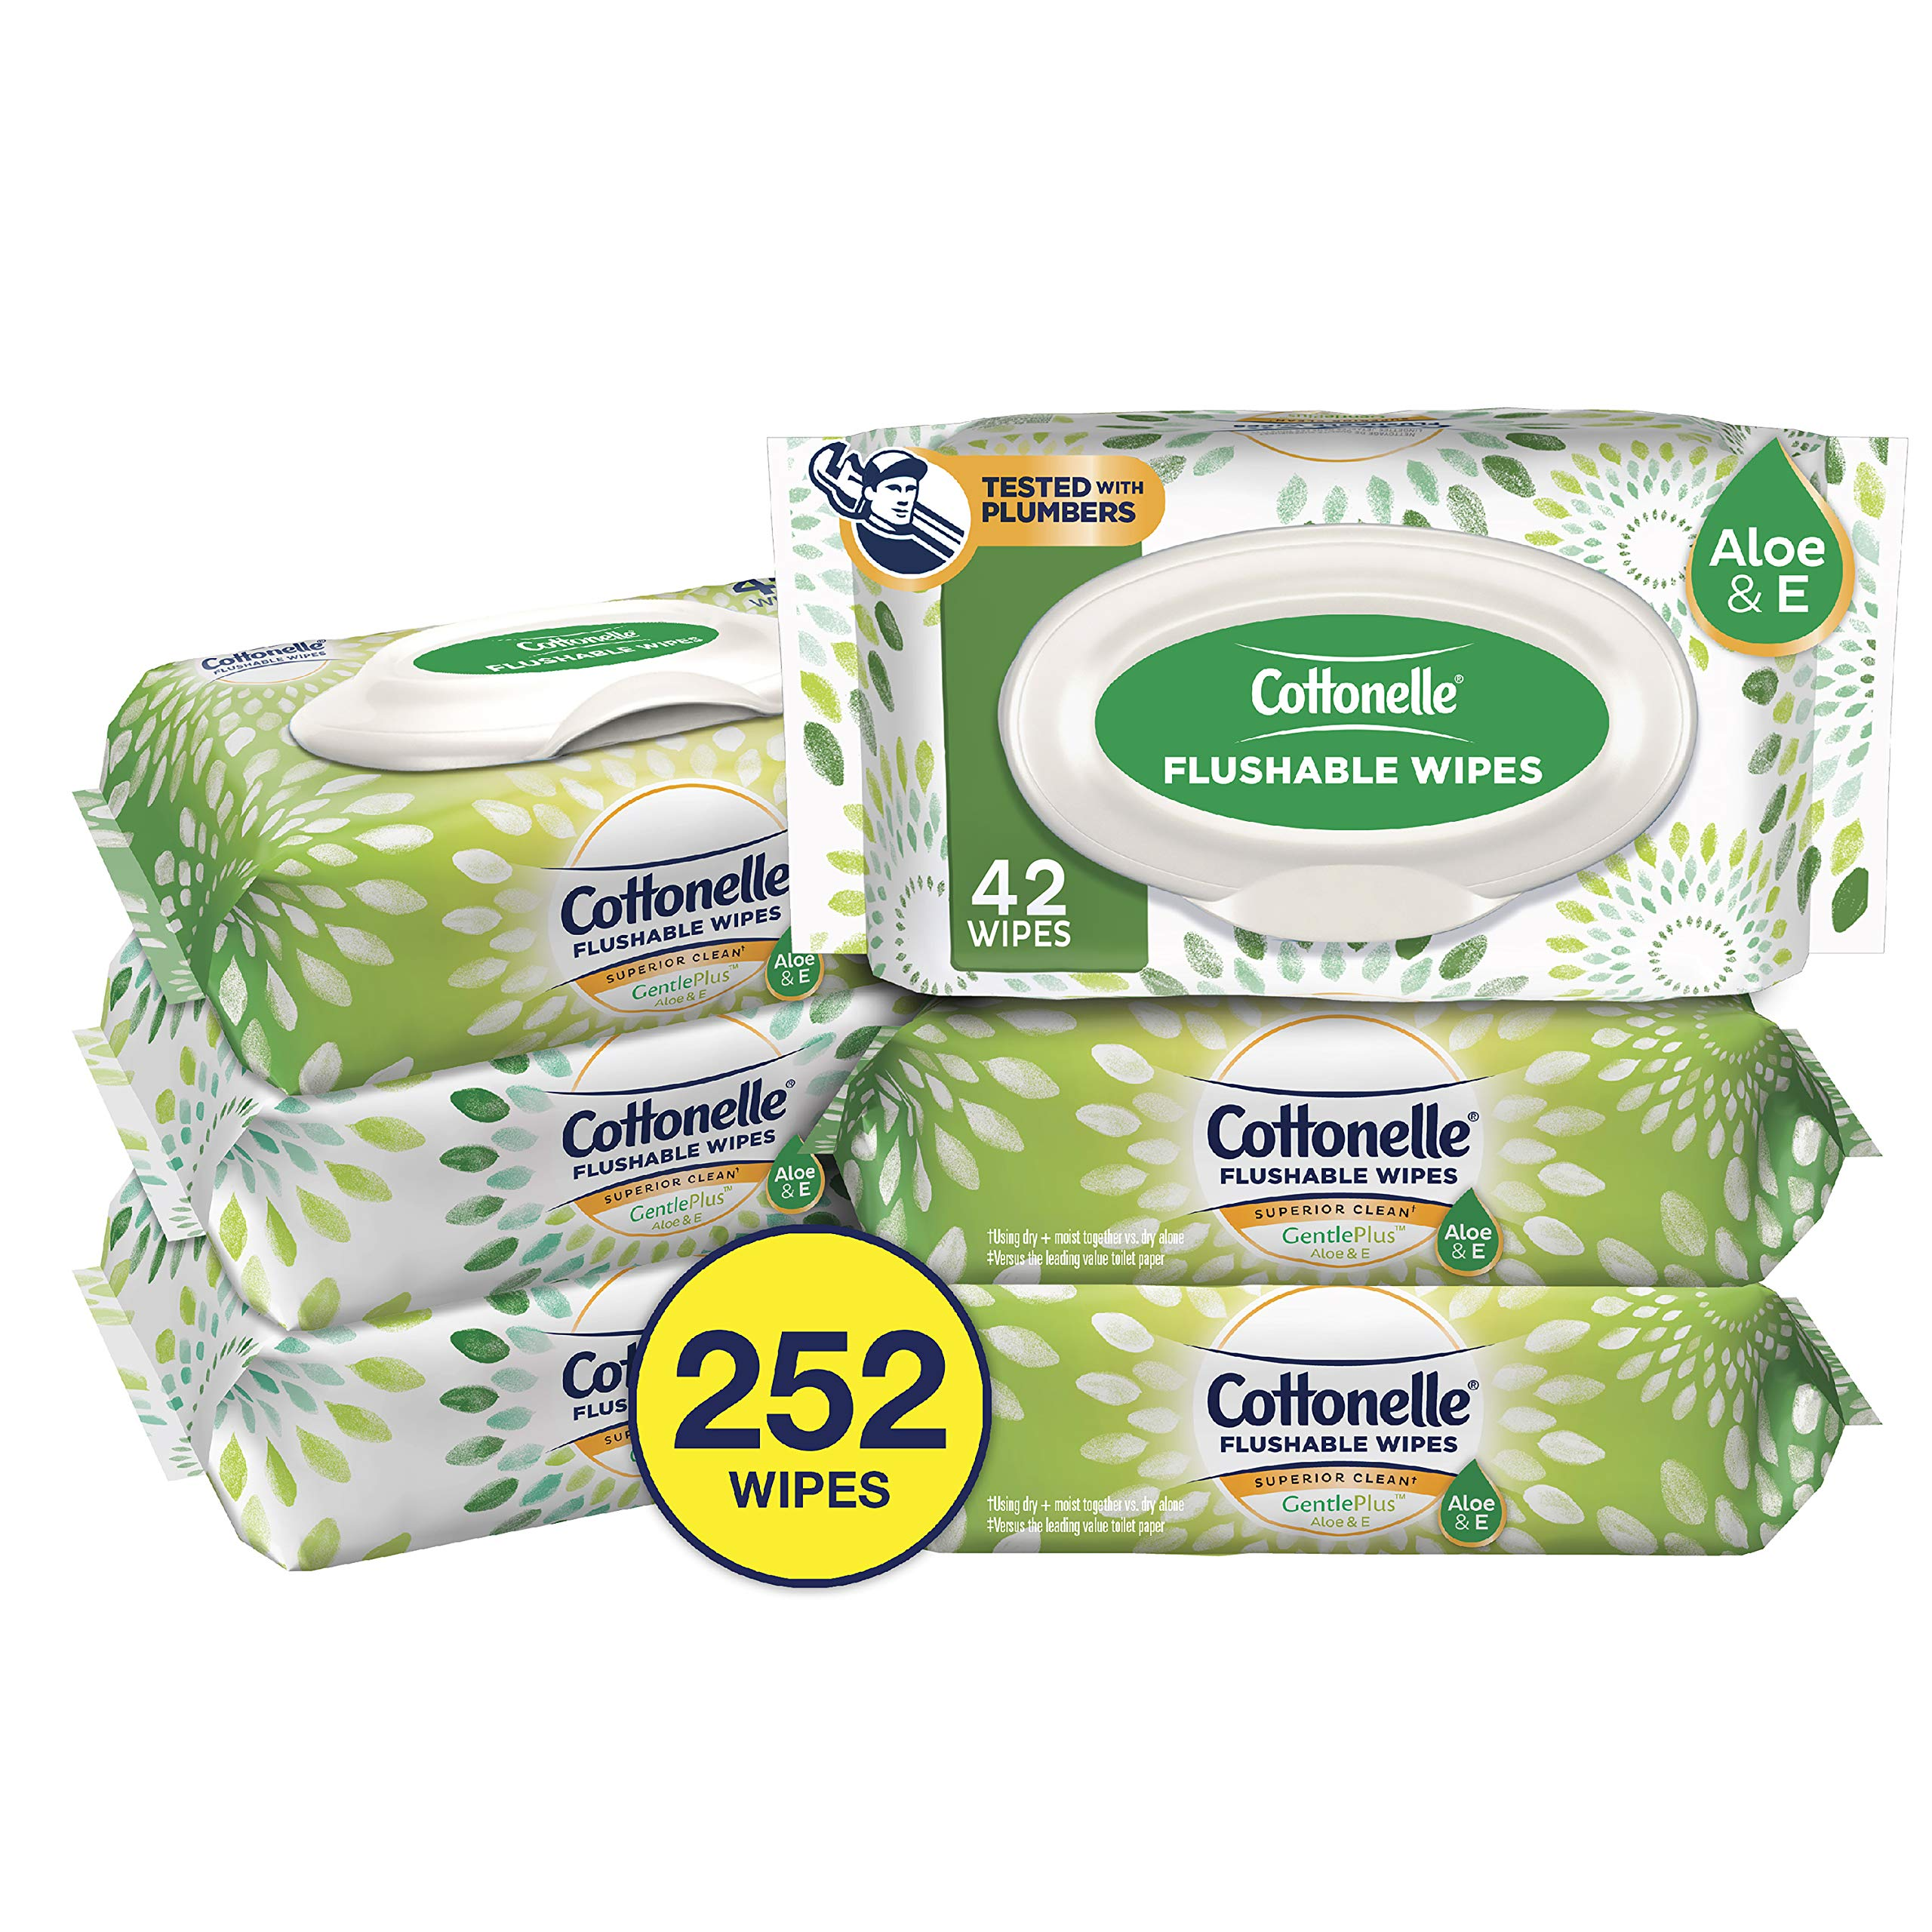 Cottonelle GentlePlus Flushable Wet Wipes with Aloe & Vitamin E, 252 Wipes per Pack by Cottonelle